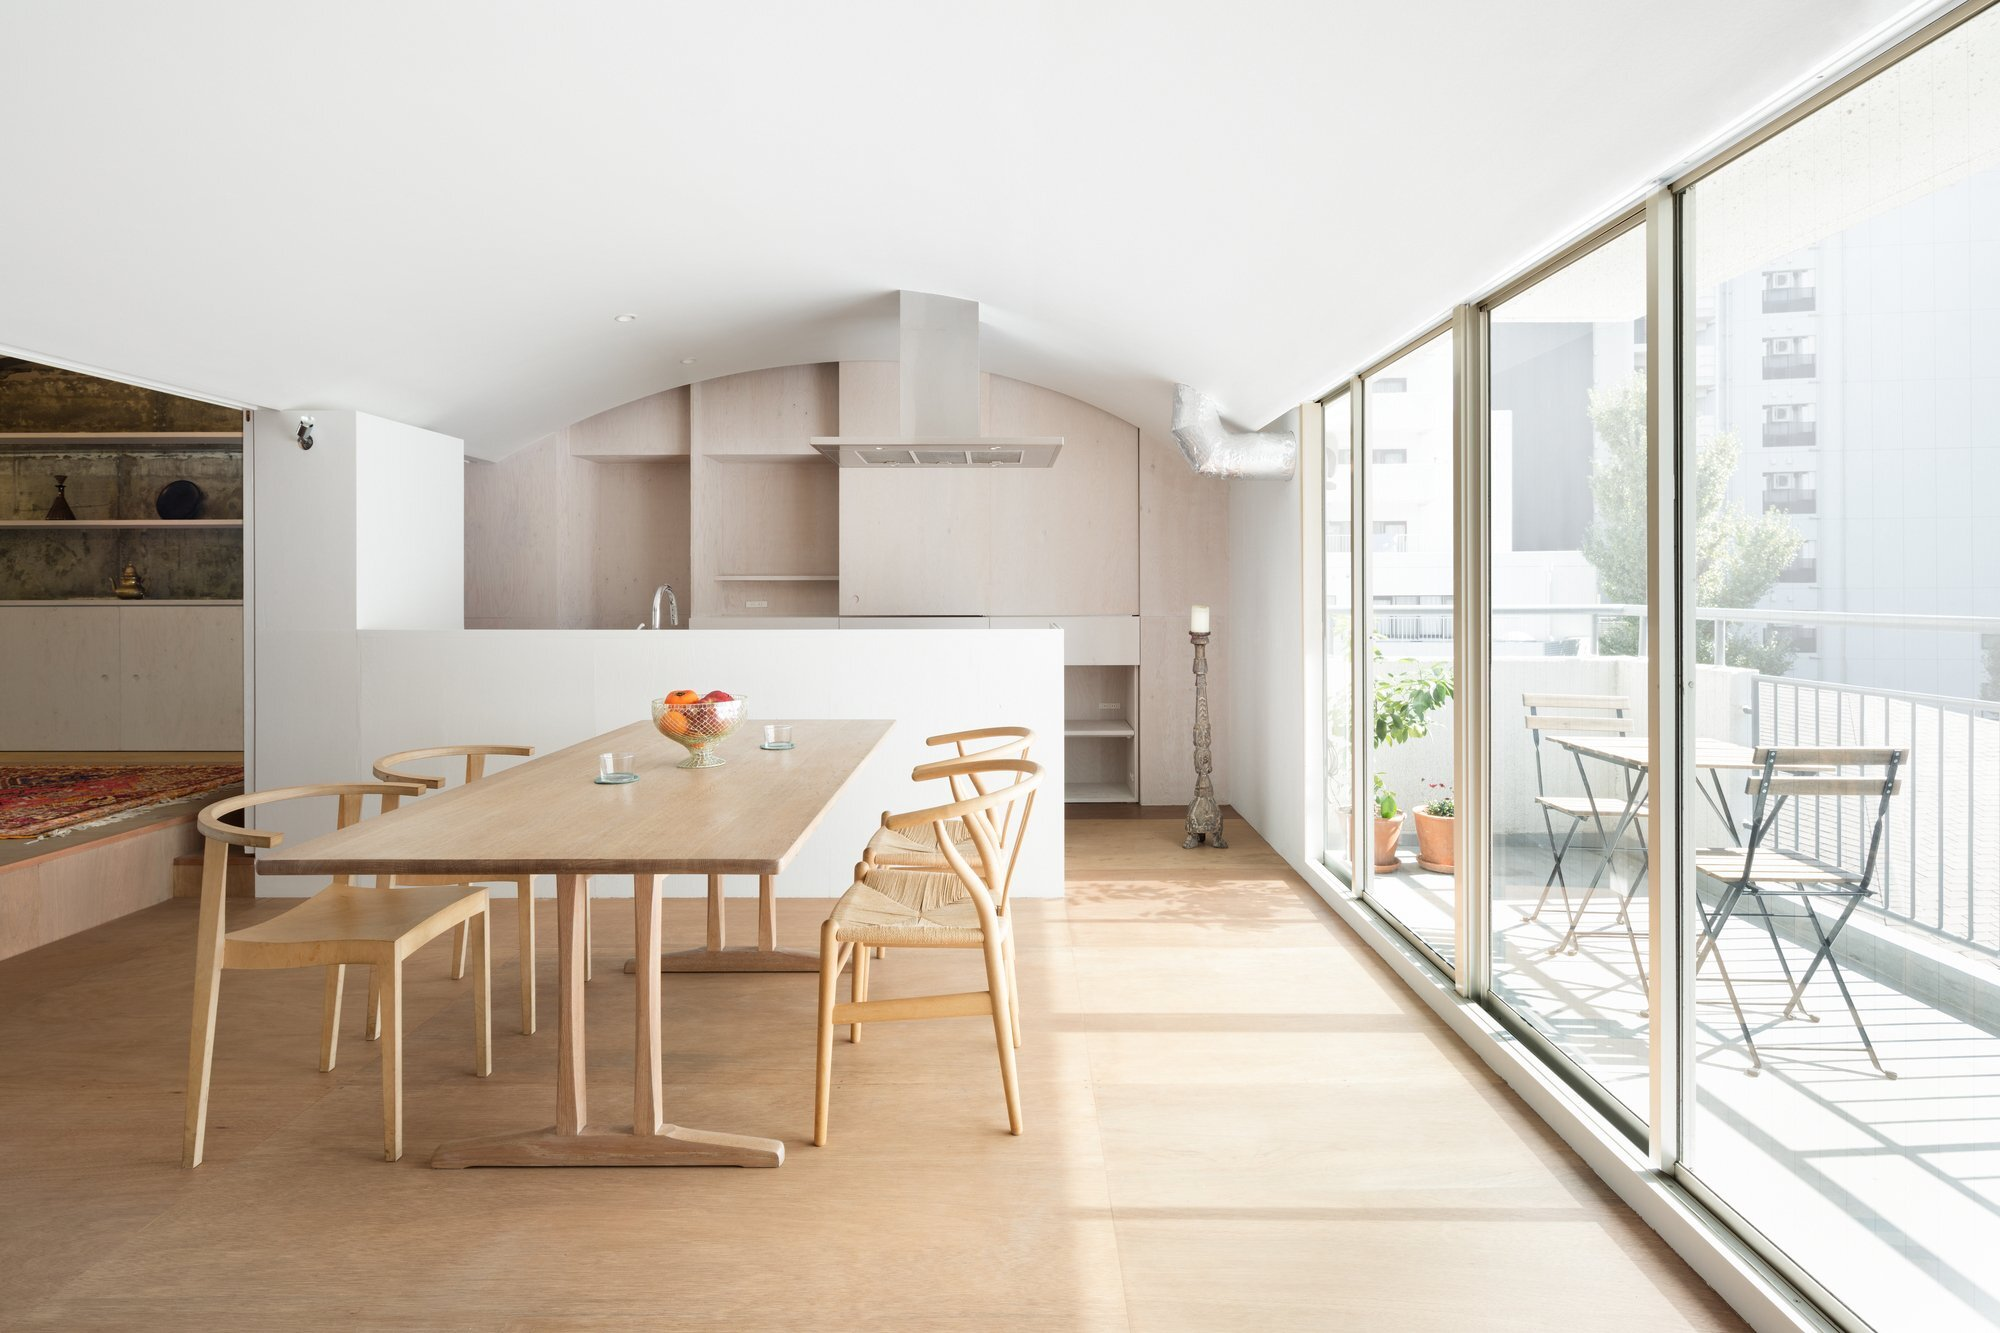 Team Living House - Masatoshi Hirai Architects Atelier - Tokyo - Dining Area - Humble Homes